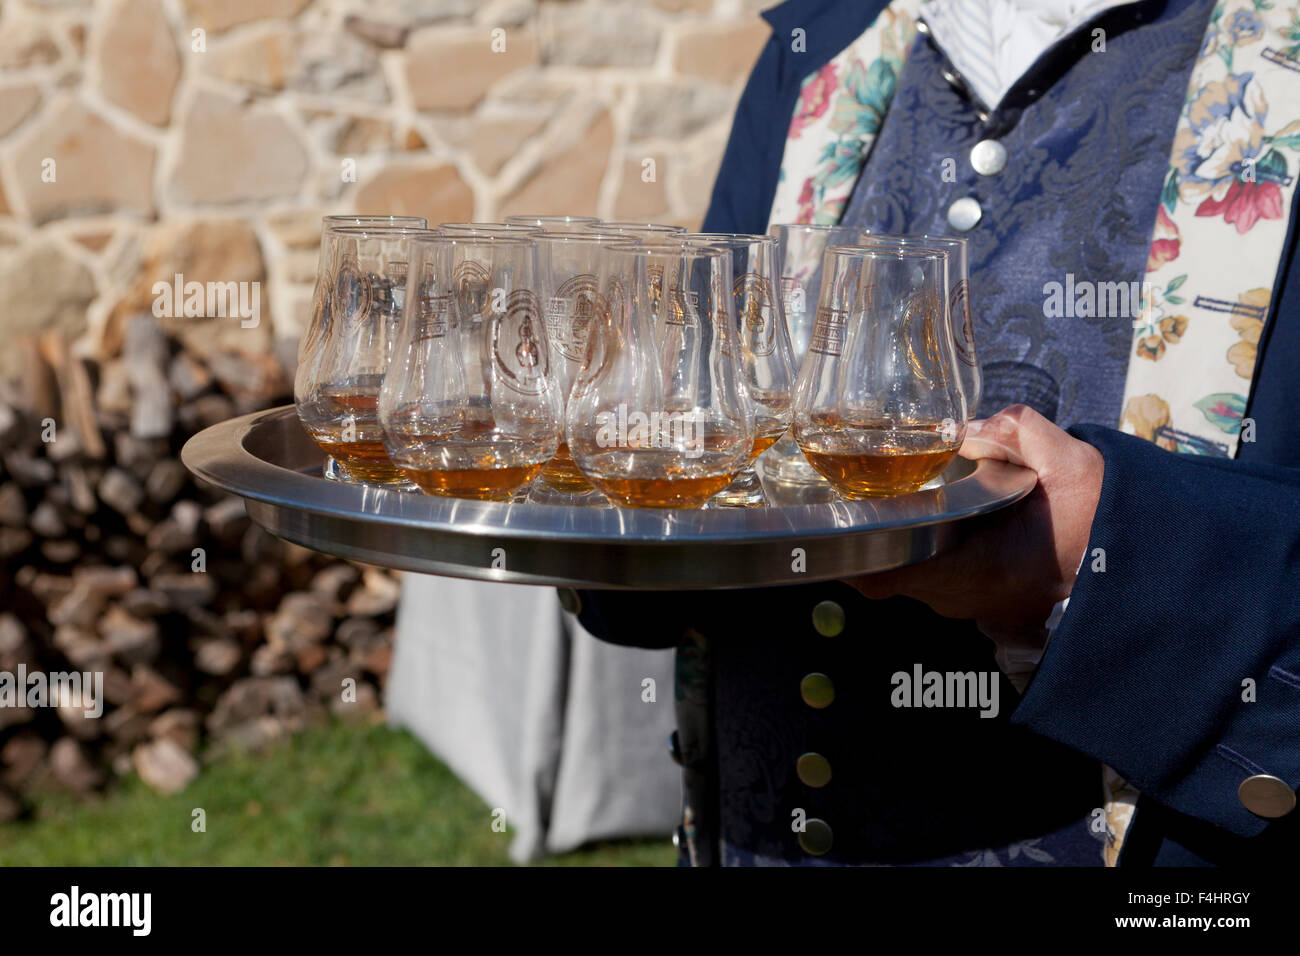 Server holding glasses of whisky - USA - Stock Image